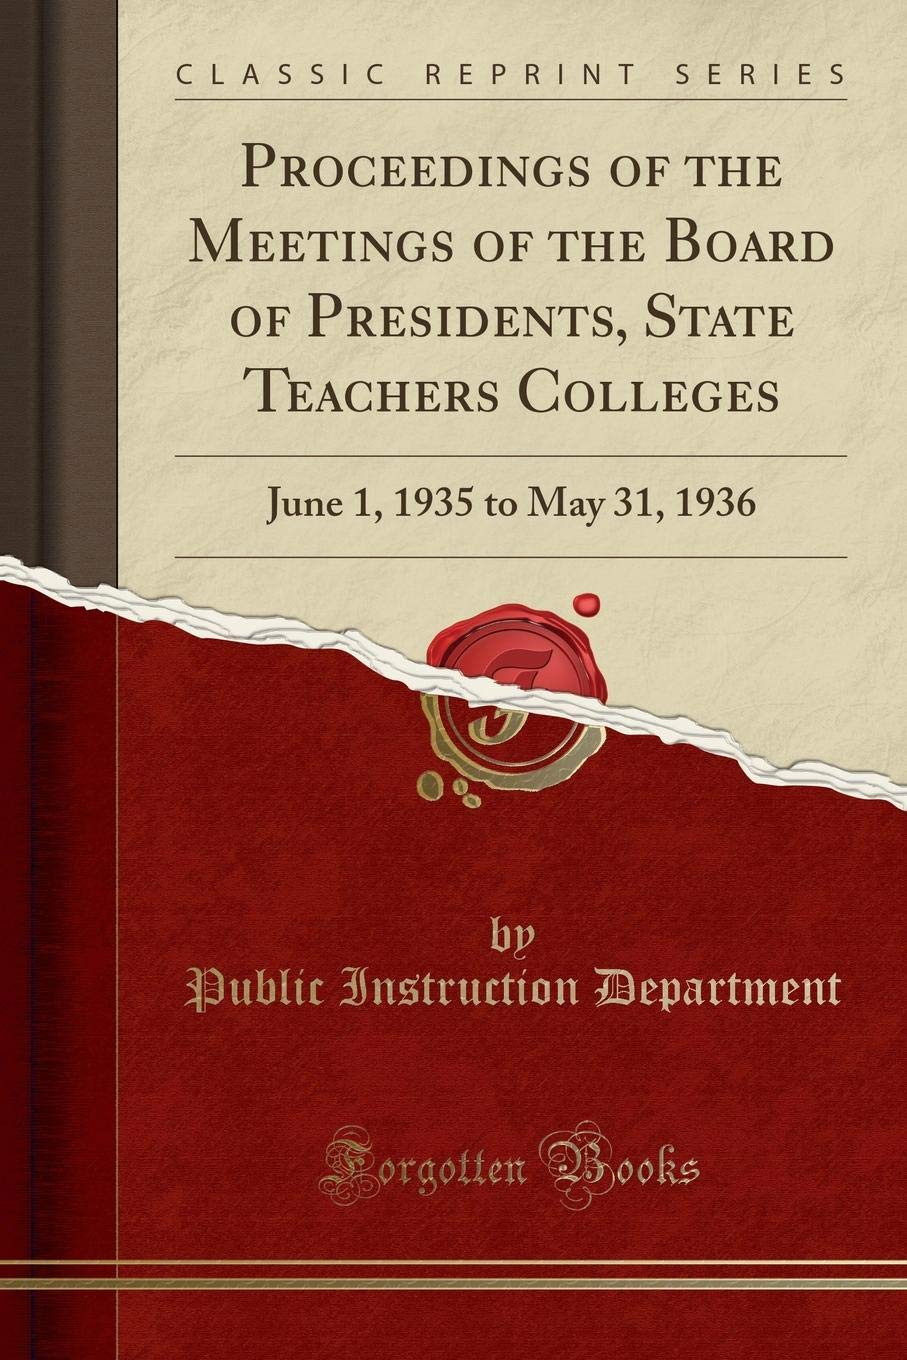 Read Online Proceedings of the Meetings of the Board of Presidents, State Teachers Colleges: June 1, 1935 to May 31, 1936 (Classic Reprint) pdf